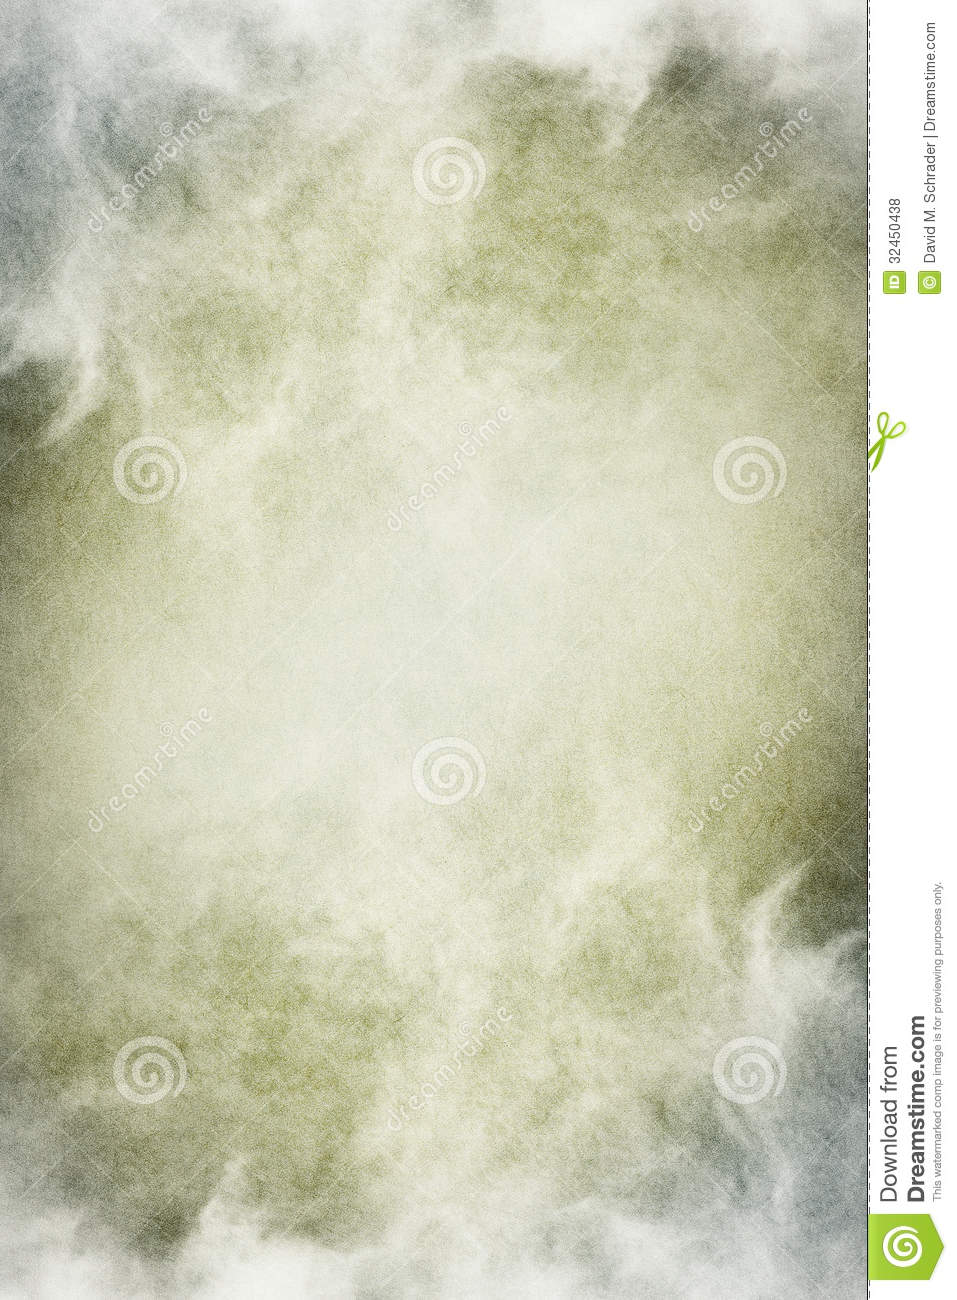 Cloud Swirl Background Royalty Free Stock Photos - Image: 32450438